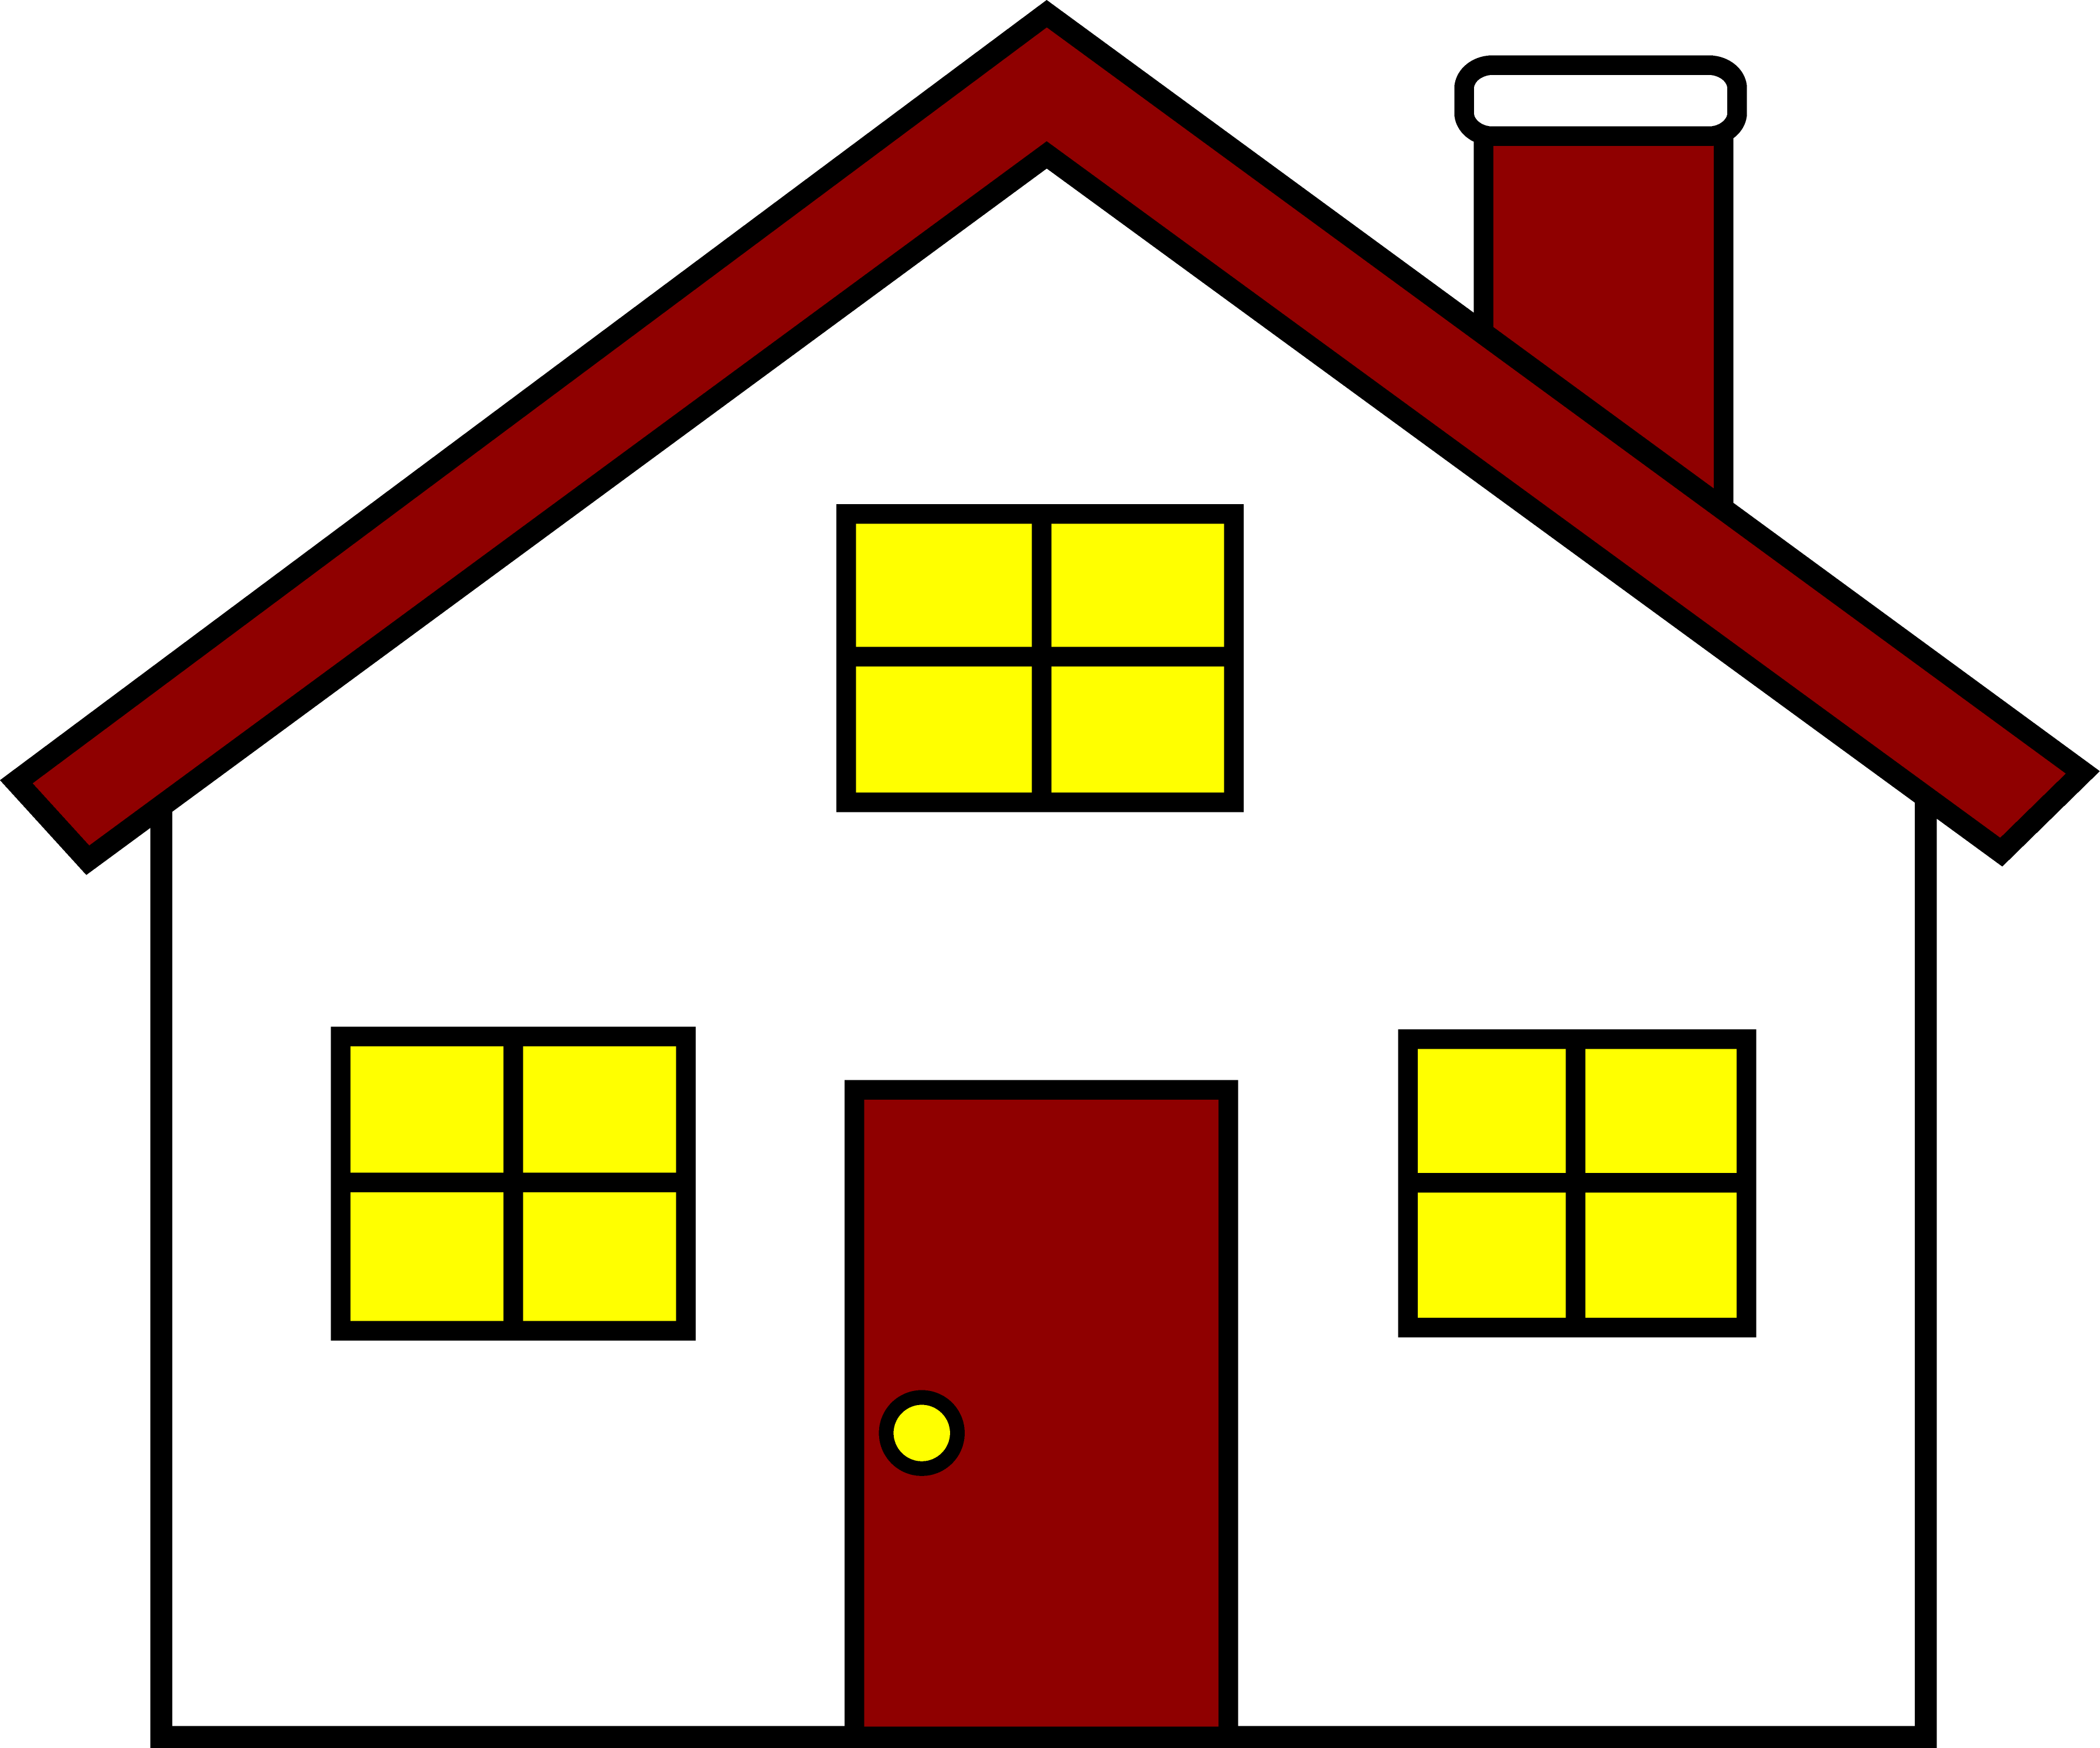 clipart picture of house - Clipground